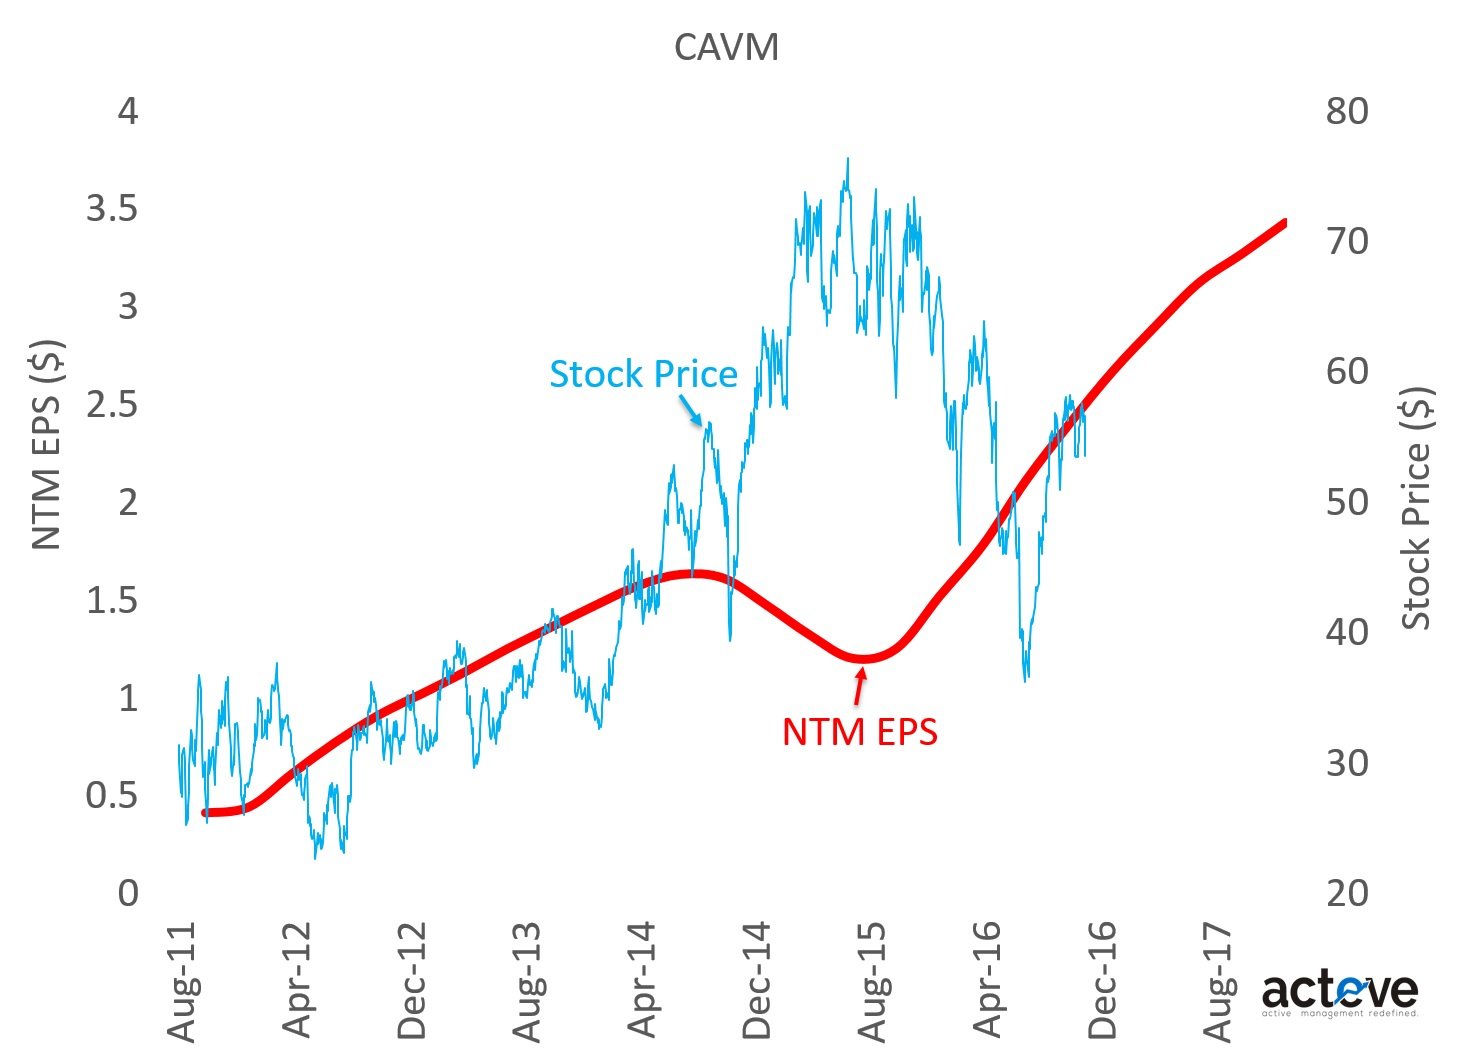 CAVM Stock Price vs. NTM EPS estimates